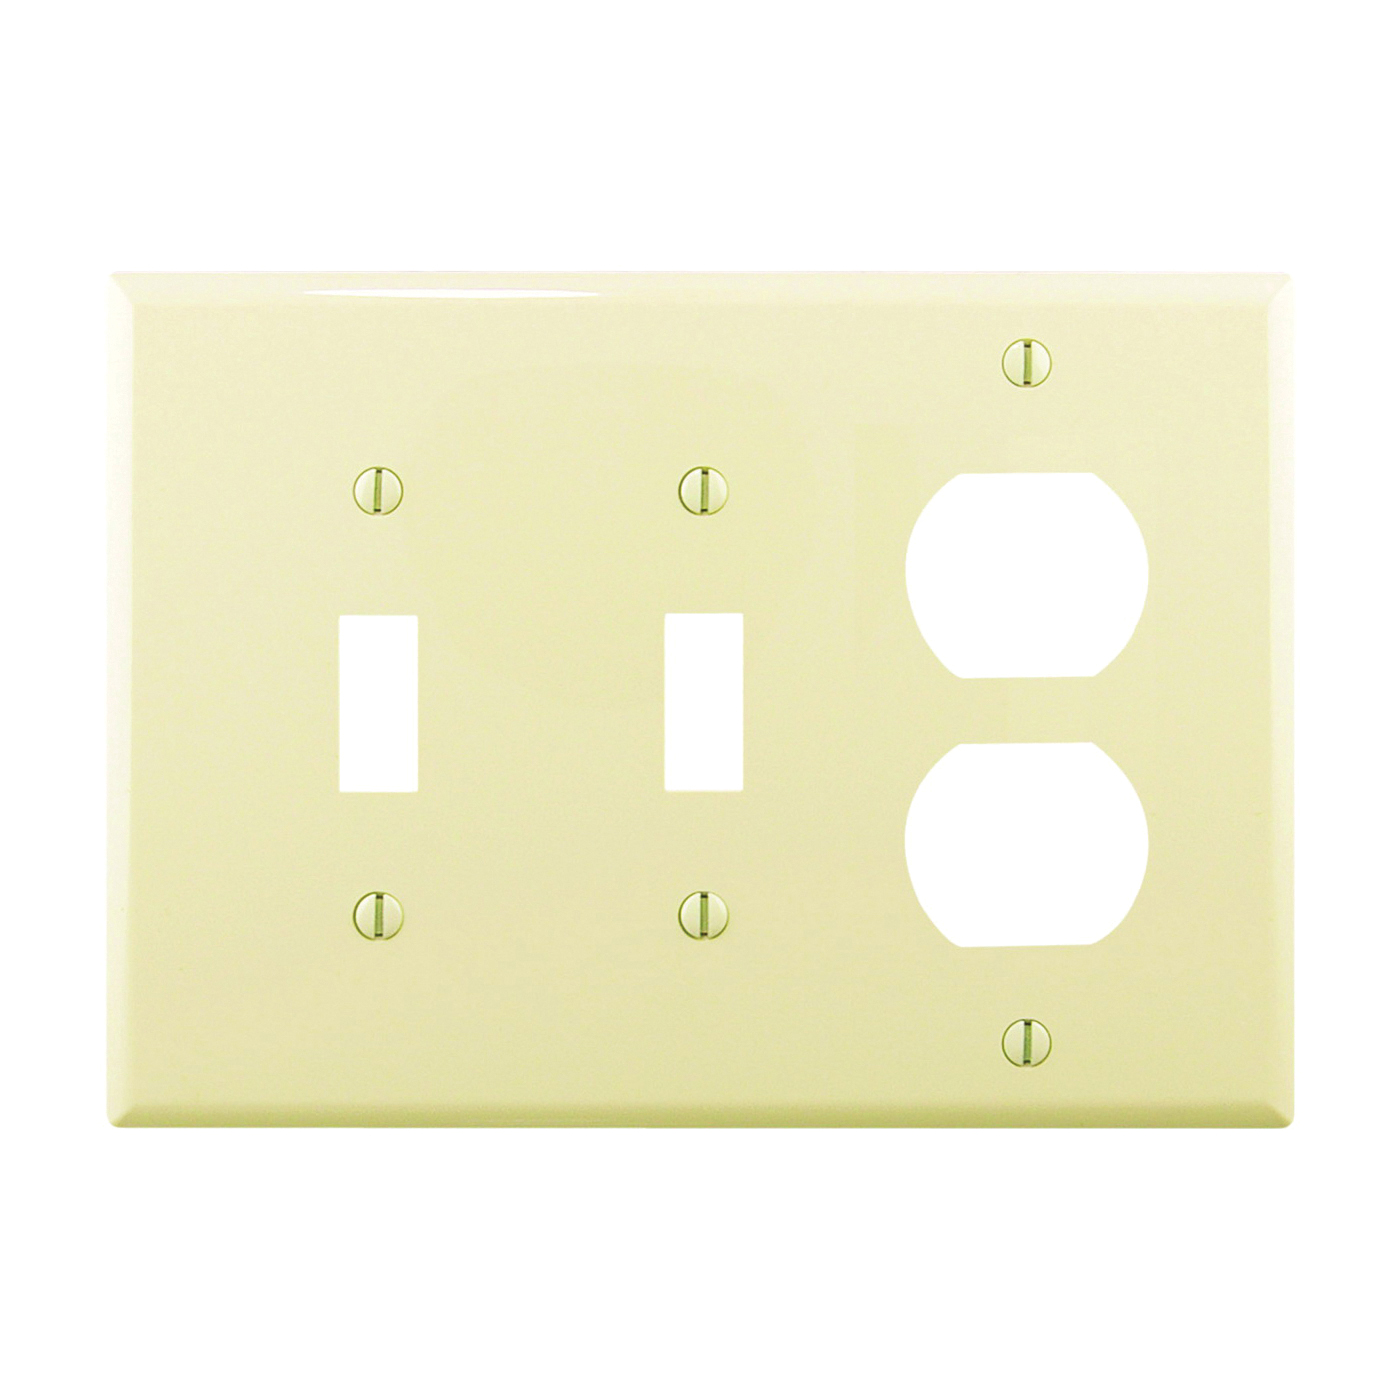 Picture of Eaton Wiring Devices PJ28A Wallplate, 4-7/8 in L, 6-3/4 in W, 3-Gang, Polycarbonate, Almond, High-Gloss